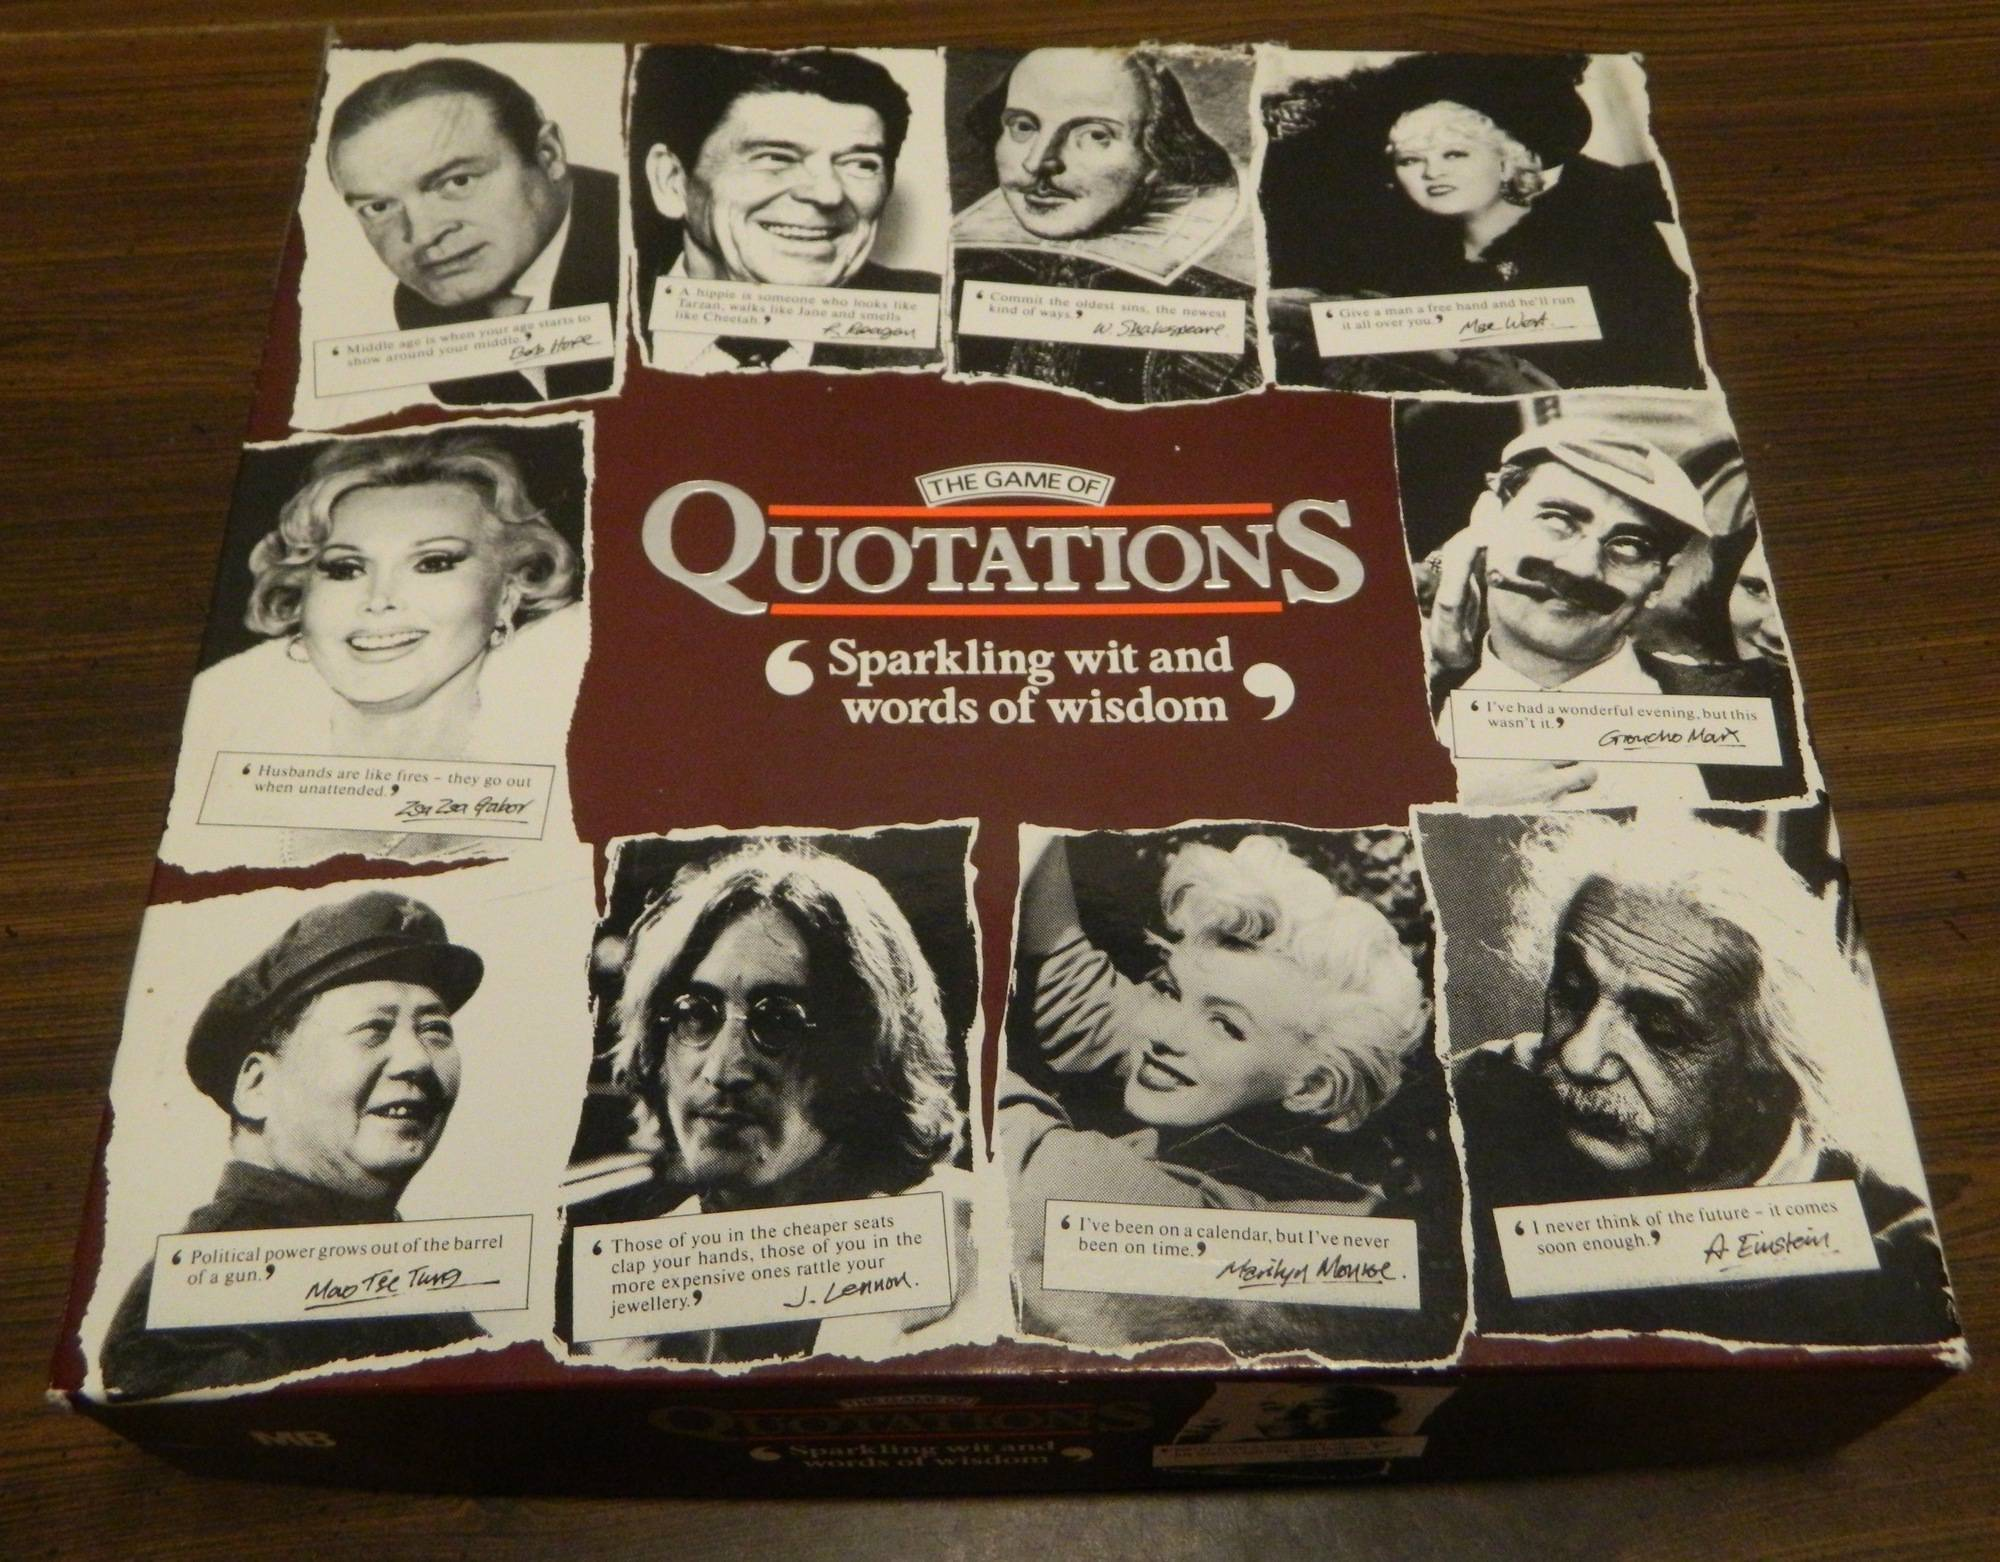 Box for Game of Quotations